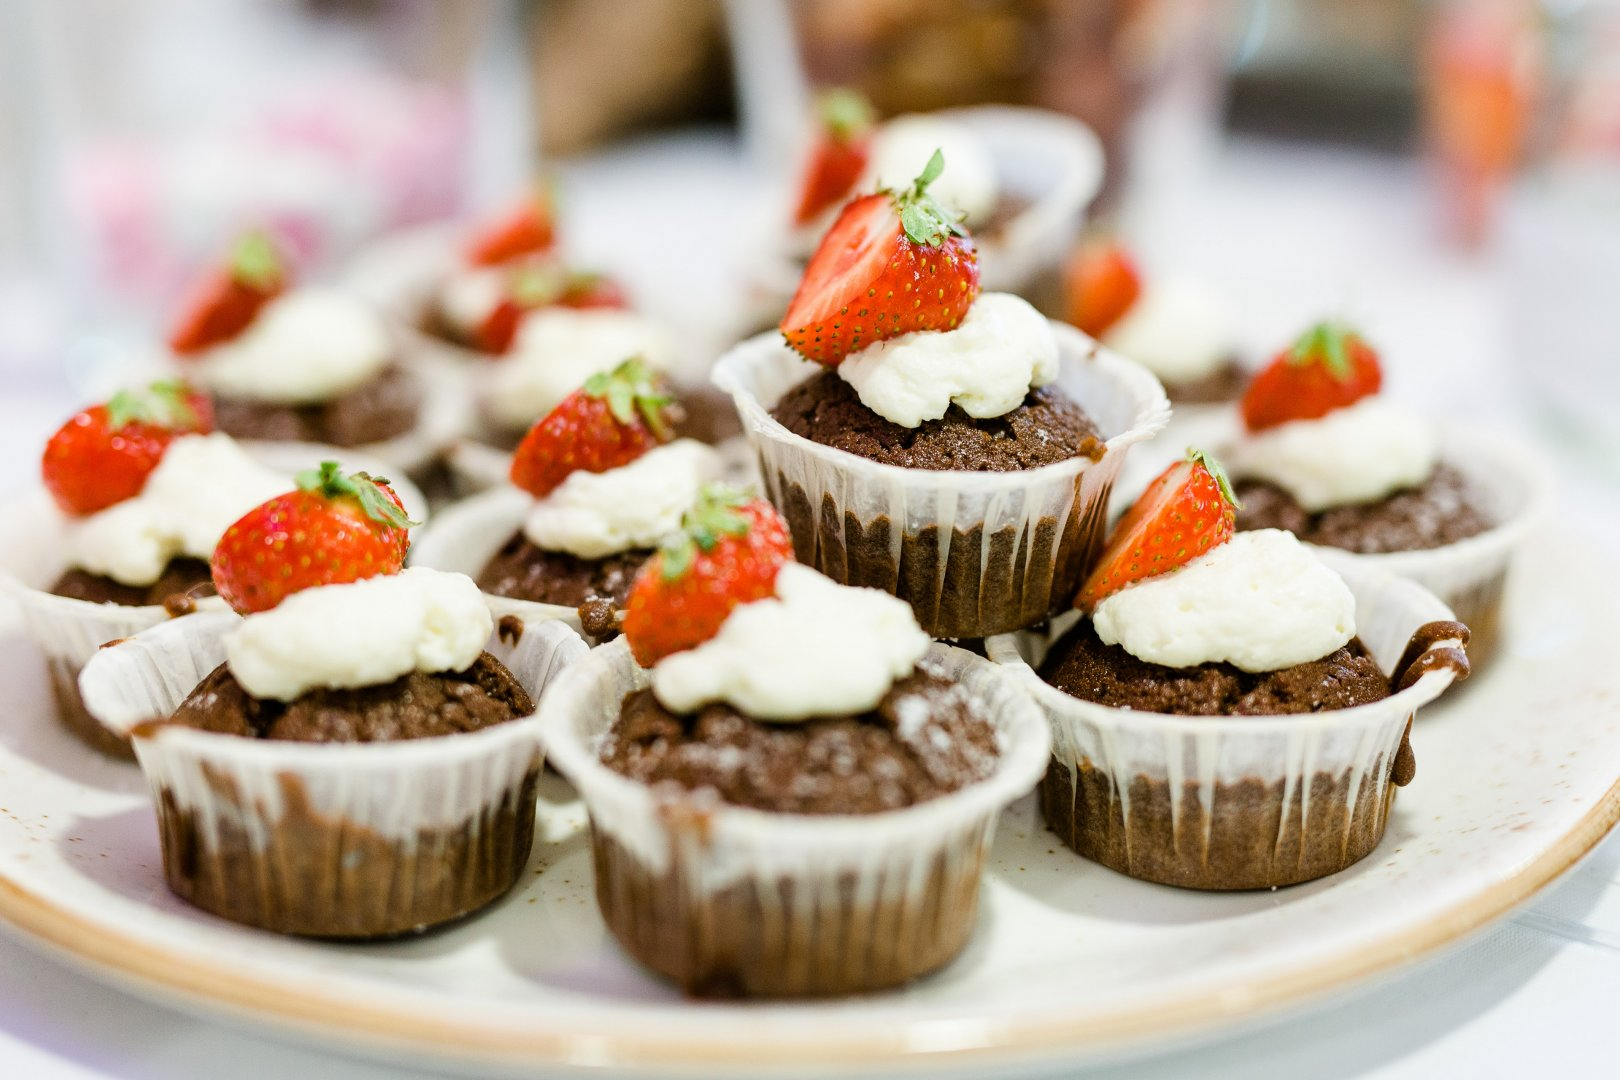 Dish Food Cupcake Cuisine Ingredient Dessert Baking Cream cheese Finger food Hors d'oeuvre Cup Baked goods Delicacy Canapé Recipe appetizer Icing À la carte food Whipped cream Cream Brunch Cake Produce Garnish Muffin Buttercream Bake sale Petit four